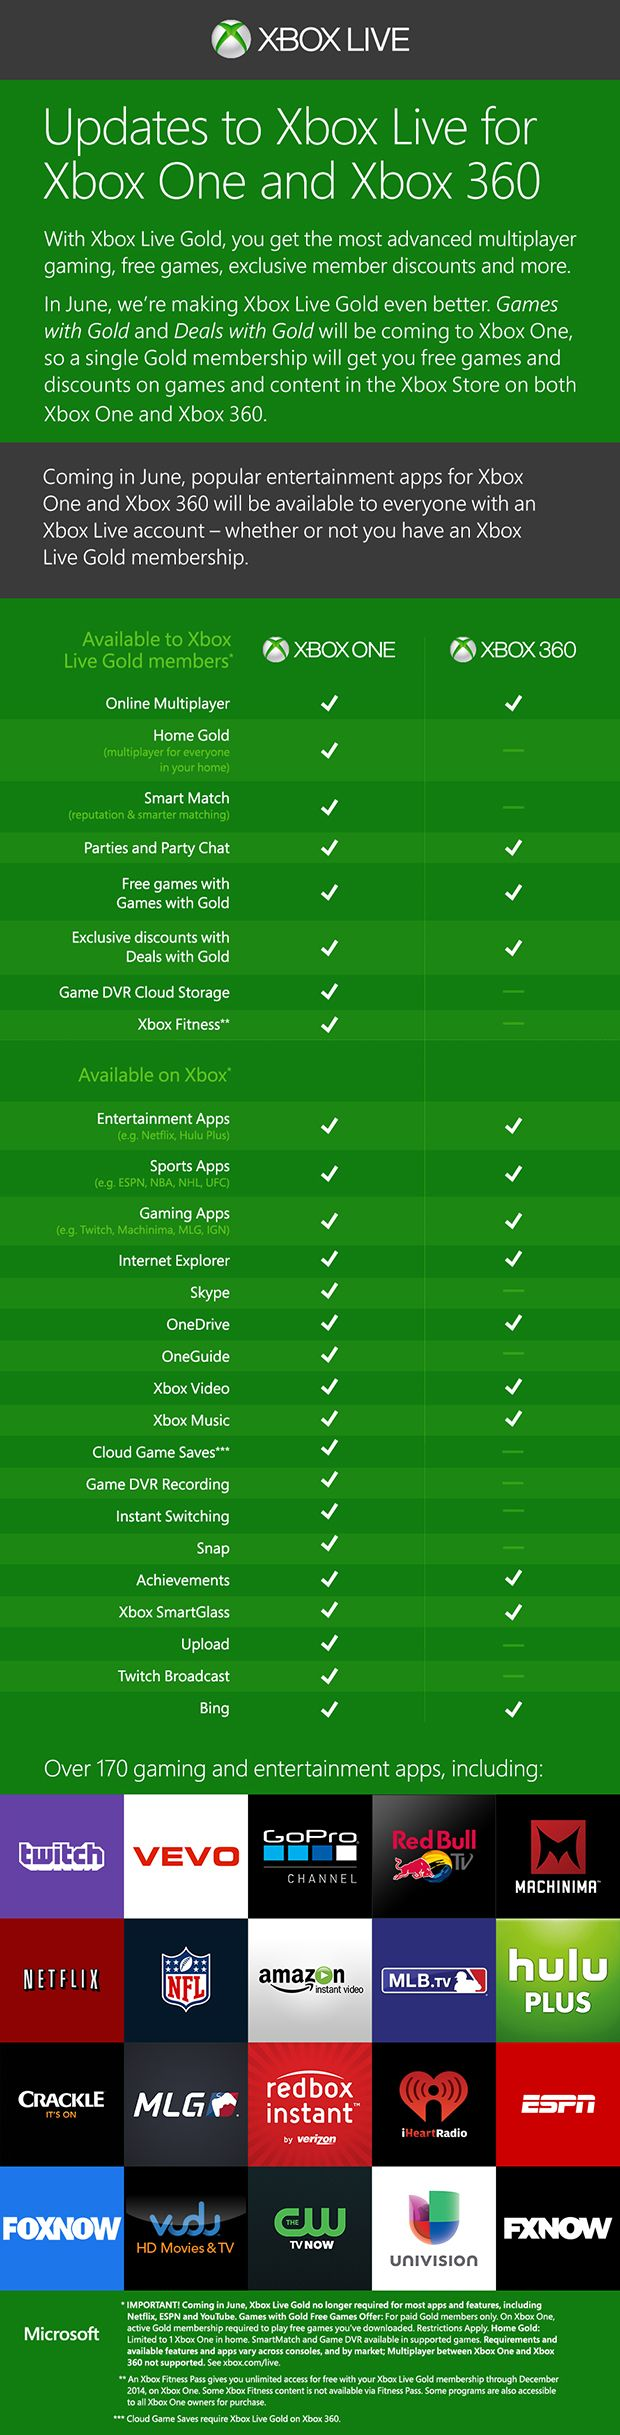 Microsoft To Drop Xbox Live Gold Requirement For Apps In June Xbox Live Xbox Xbox One